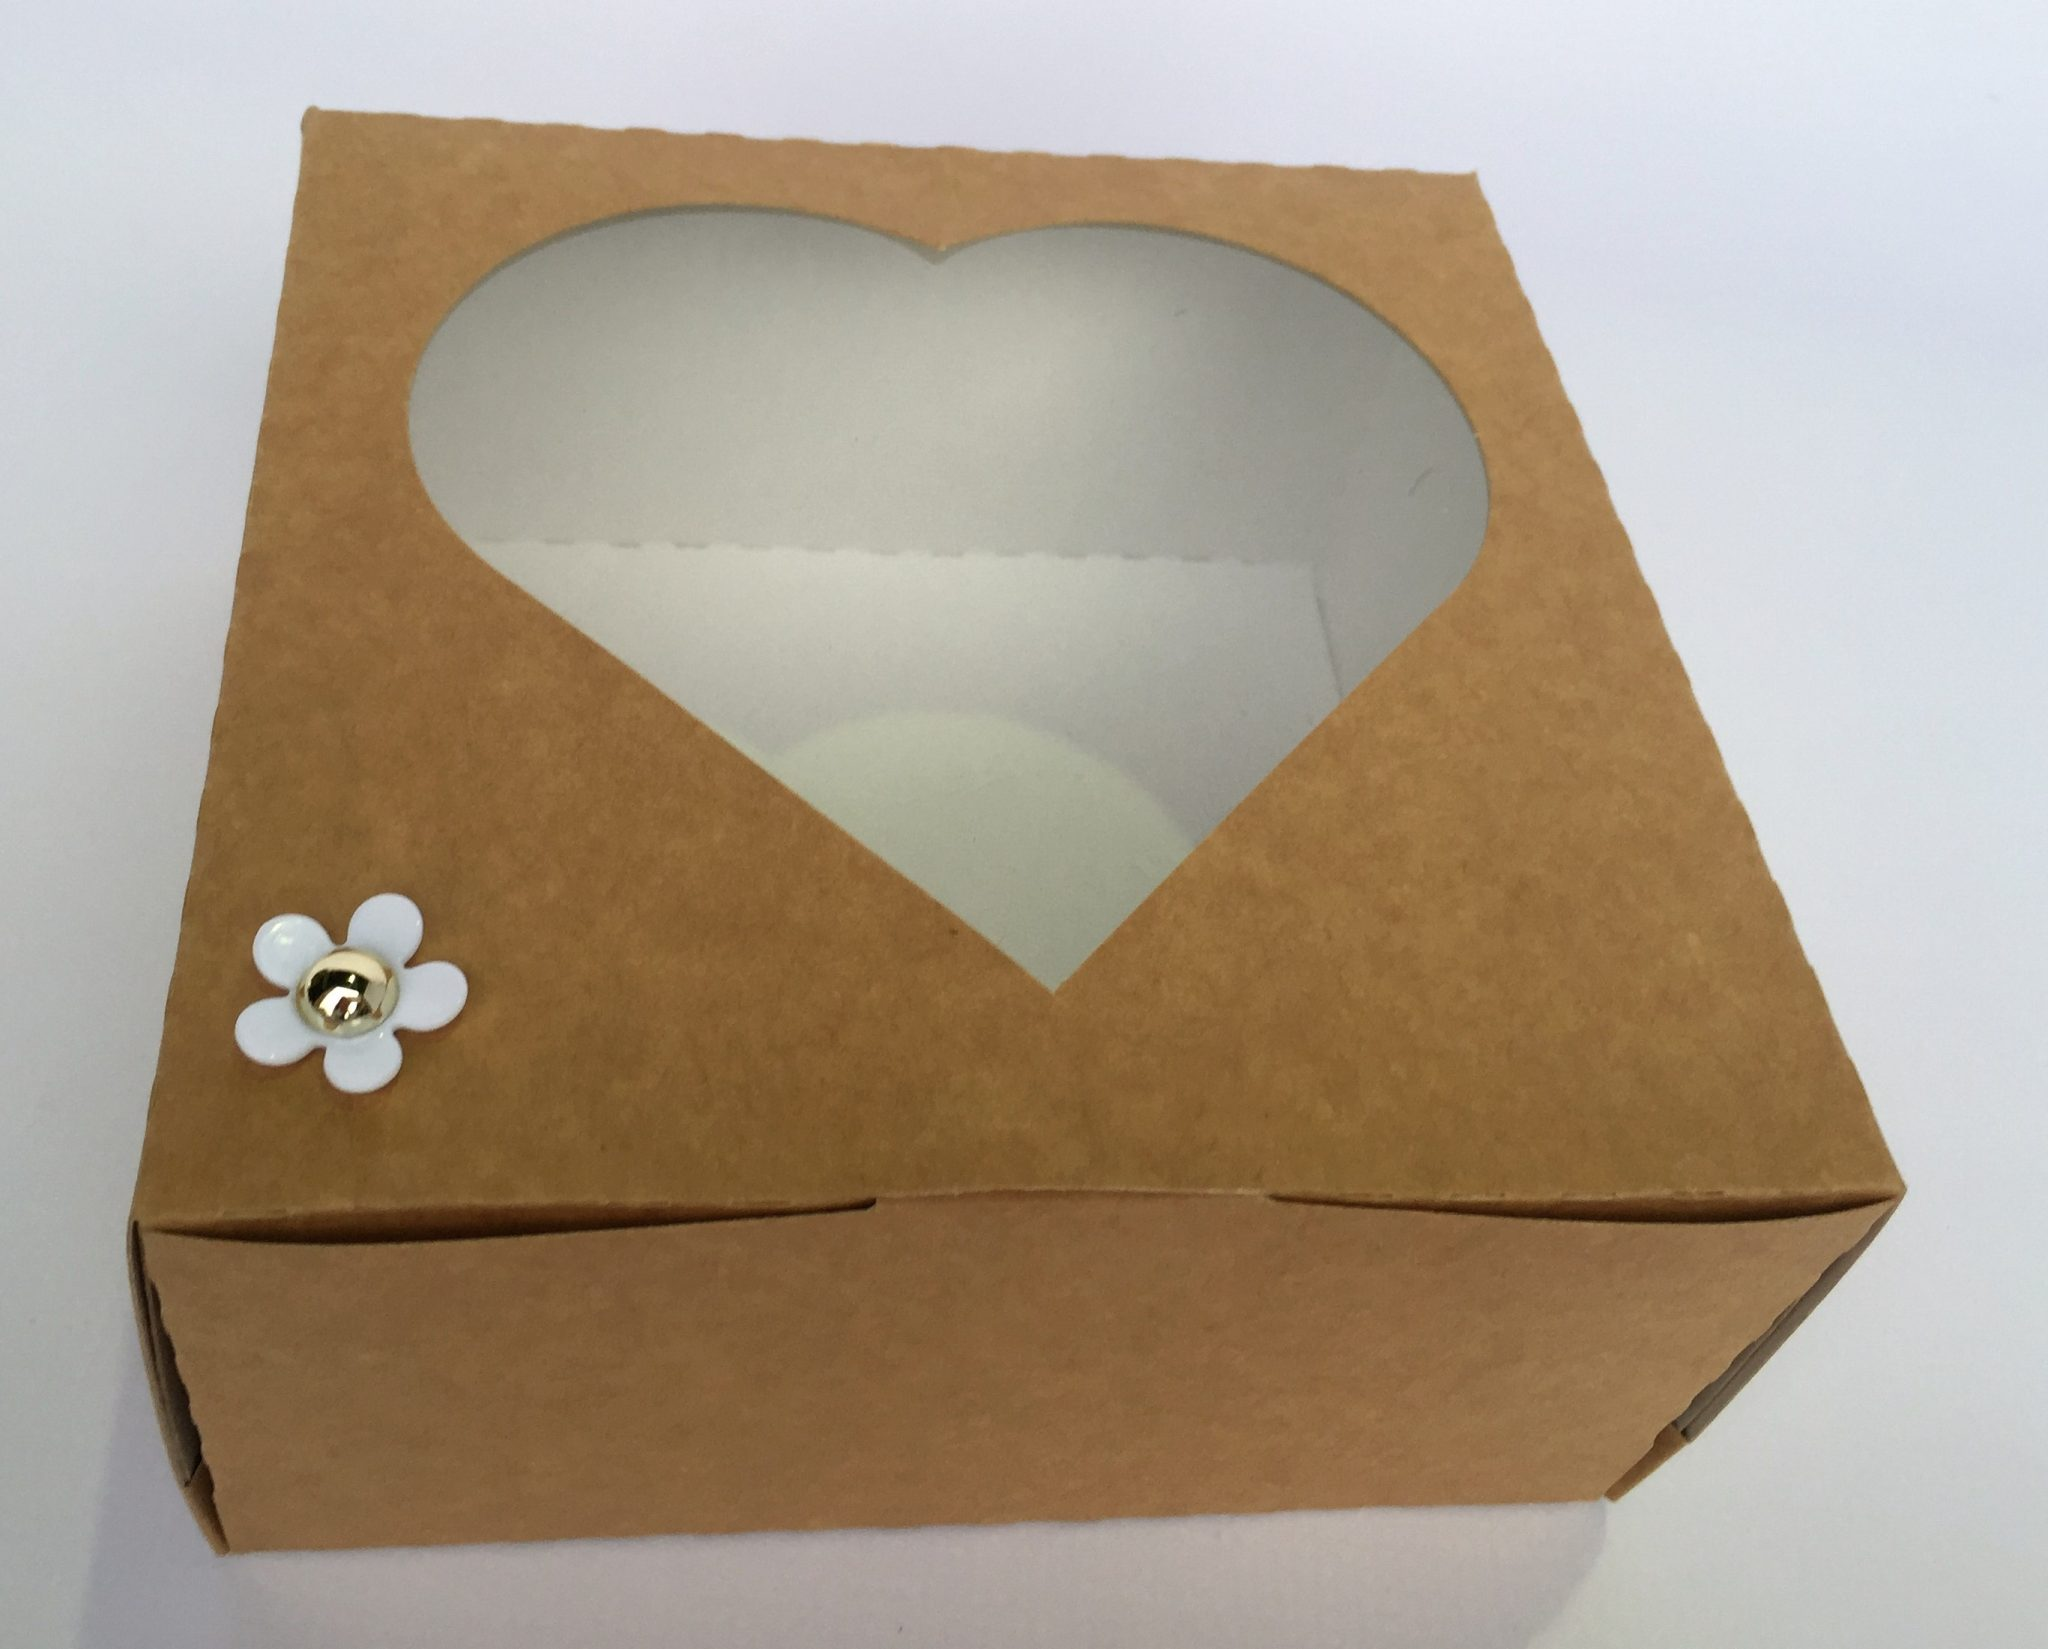 Heart Windowed Cake Box